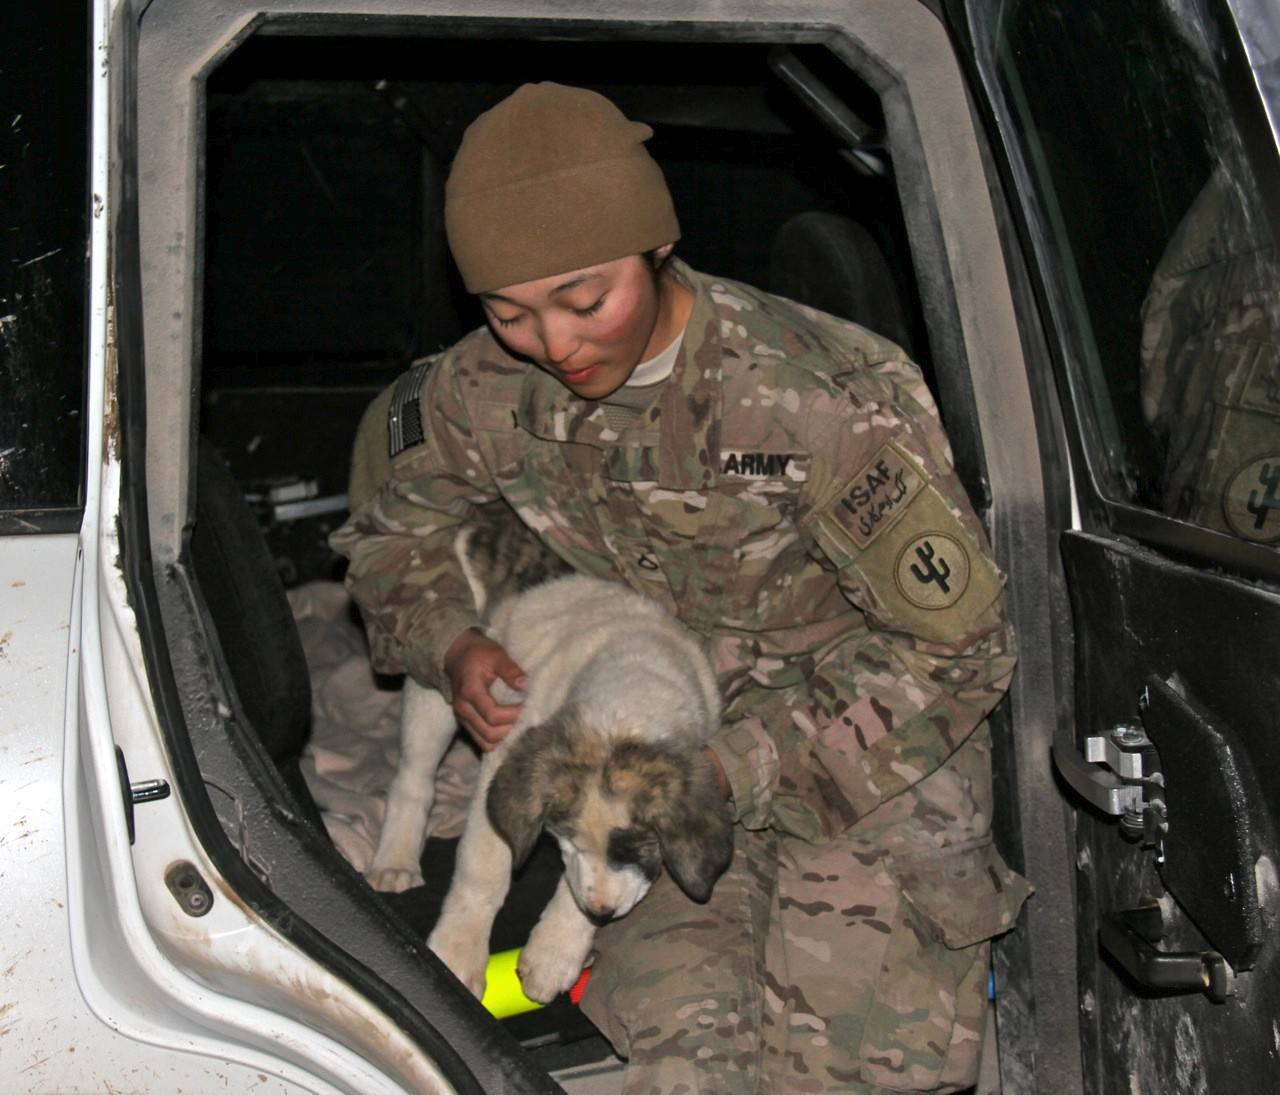 Wheaton native Army Spc. Maryann Yang relied on Puppy Rescue Mission's foster families to care for Patches while she finished her deployment in Afghanistan.